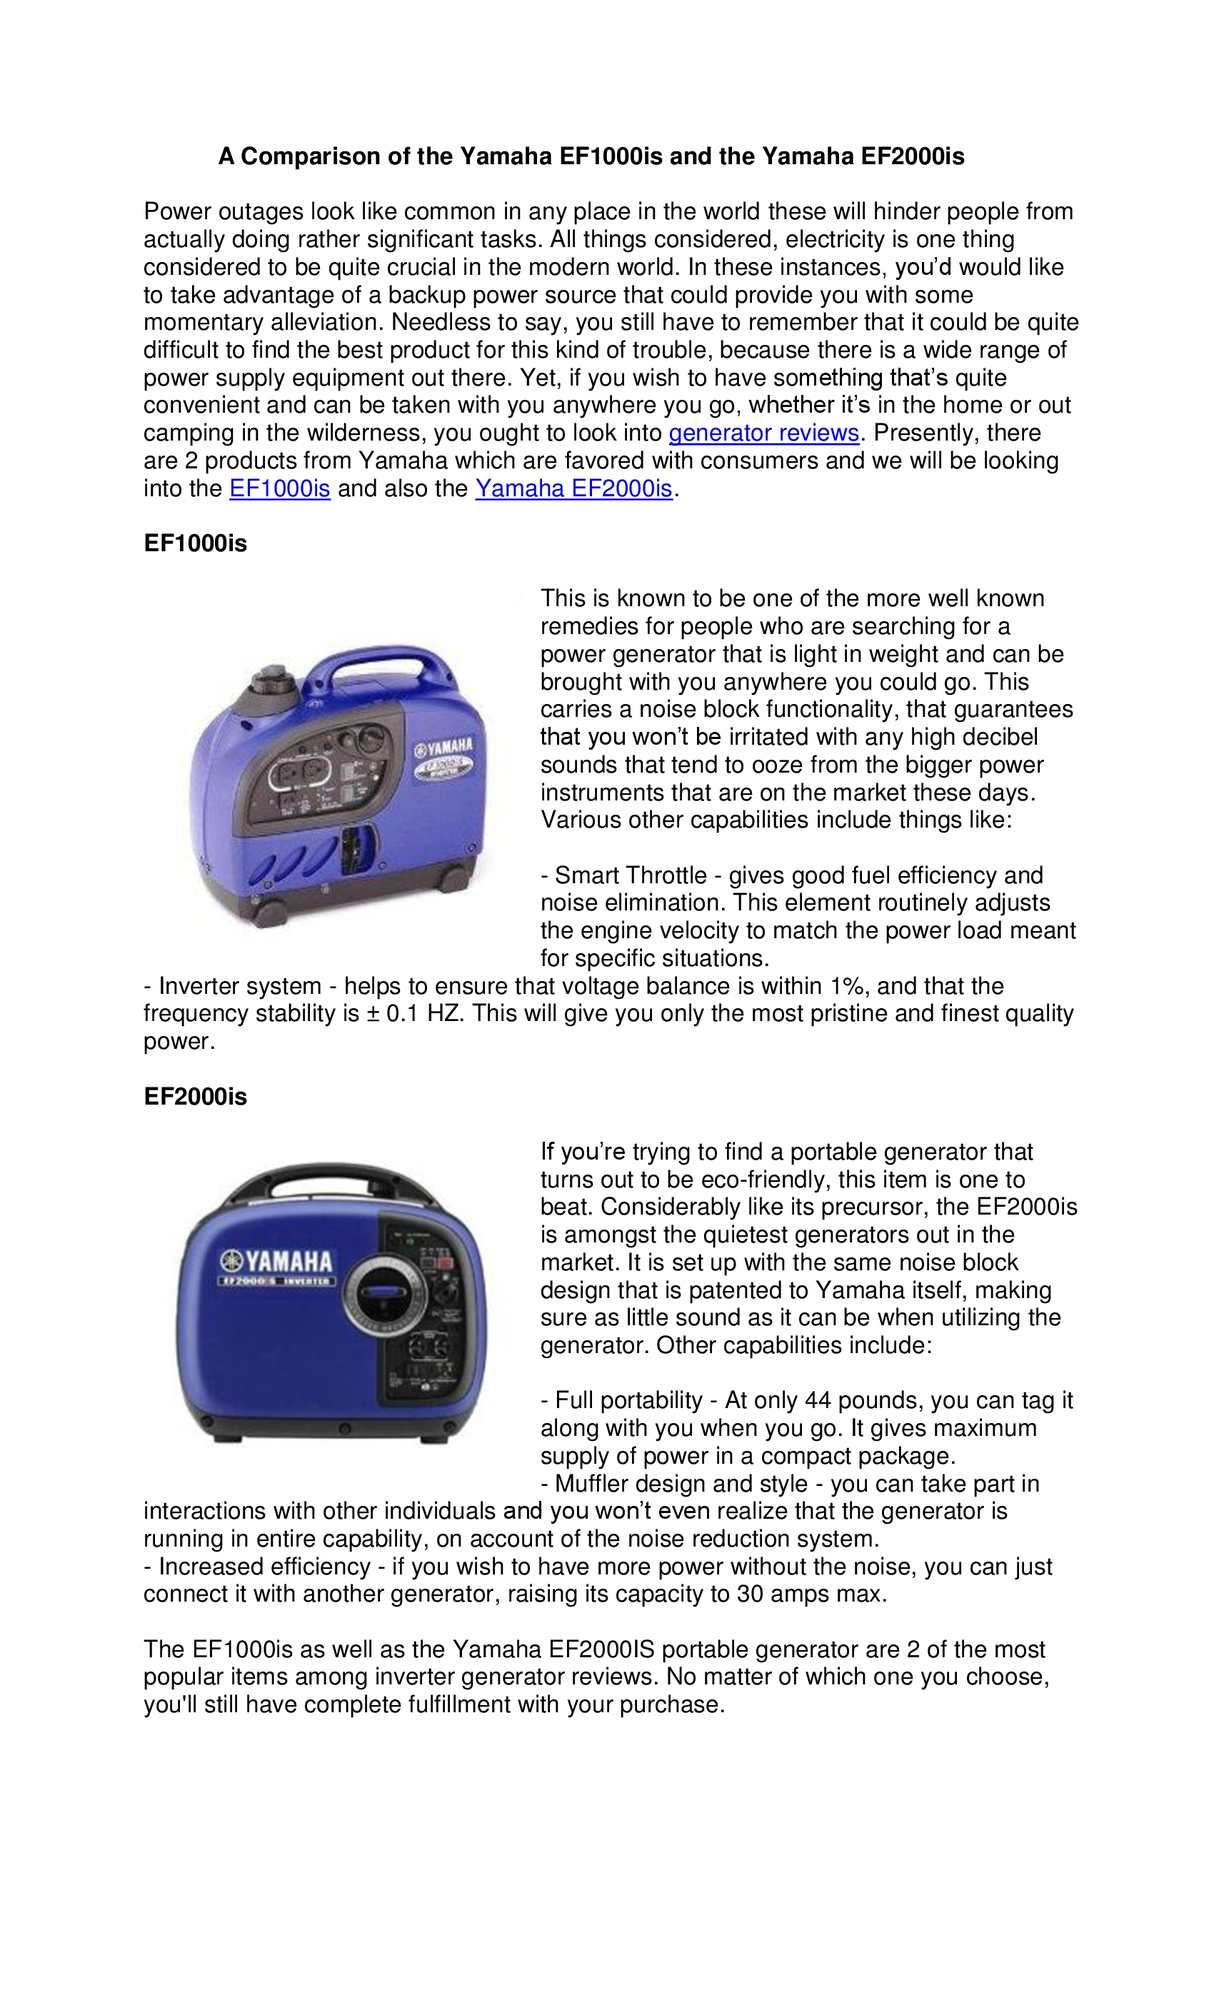 Calaméo - A Comparison of the Yamaha EF1000is and the Yamaha EF2000is